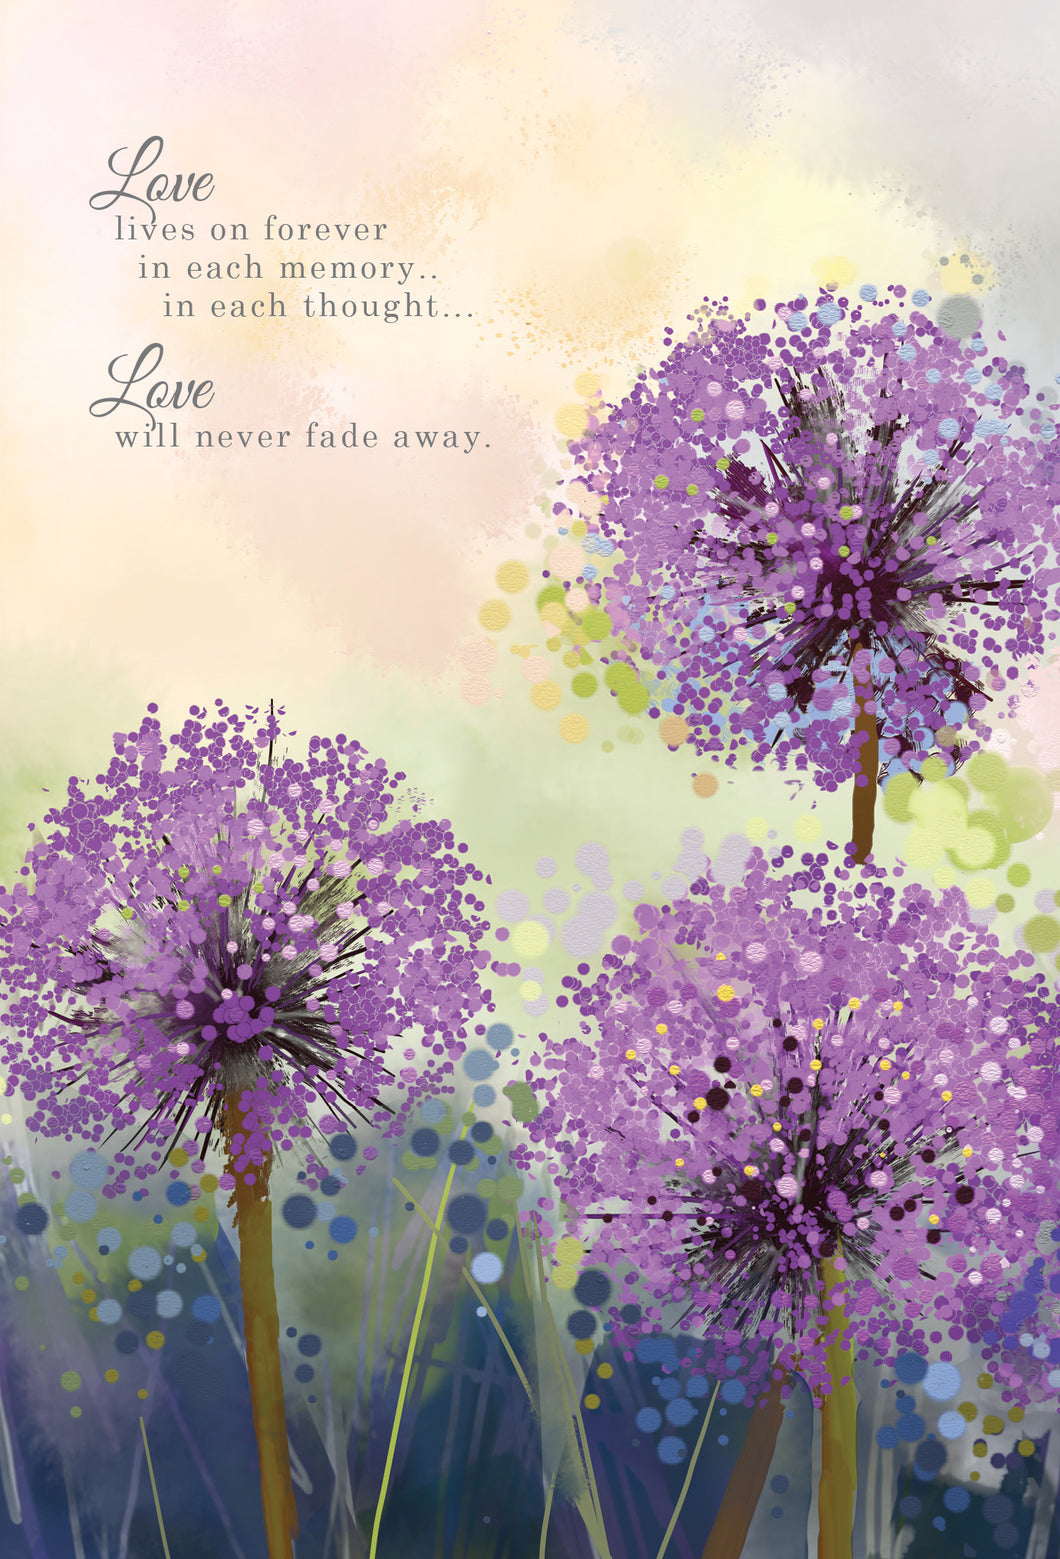 Sympathy Card Love lives forever in eahc